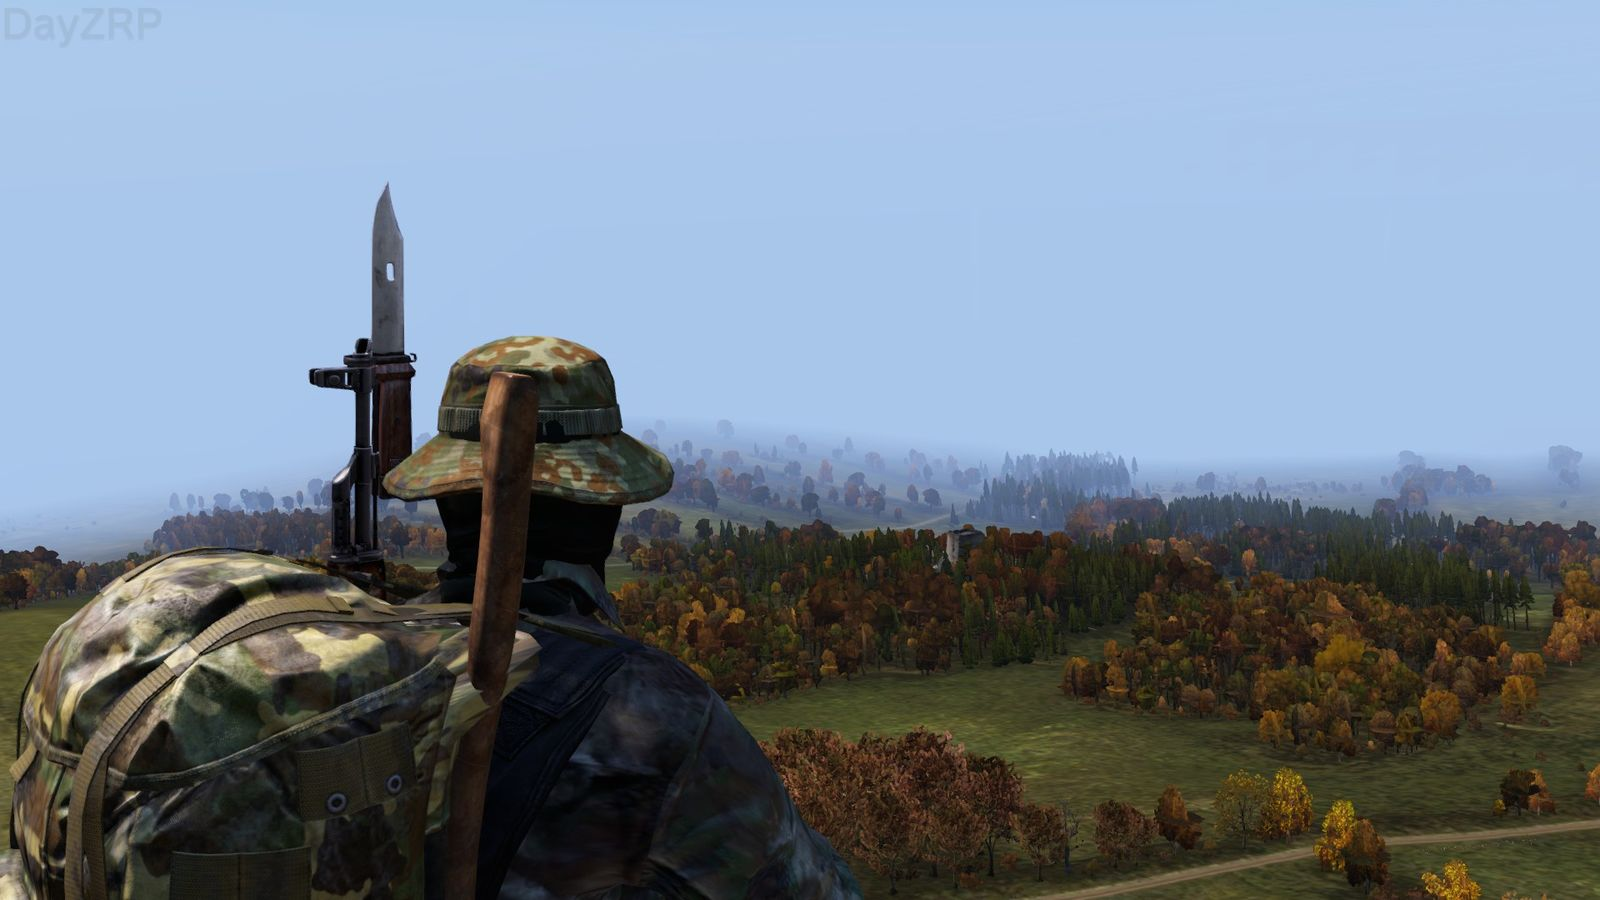 Alice Backpack Dayz castle in the distance - dayz standalone - dayzrp